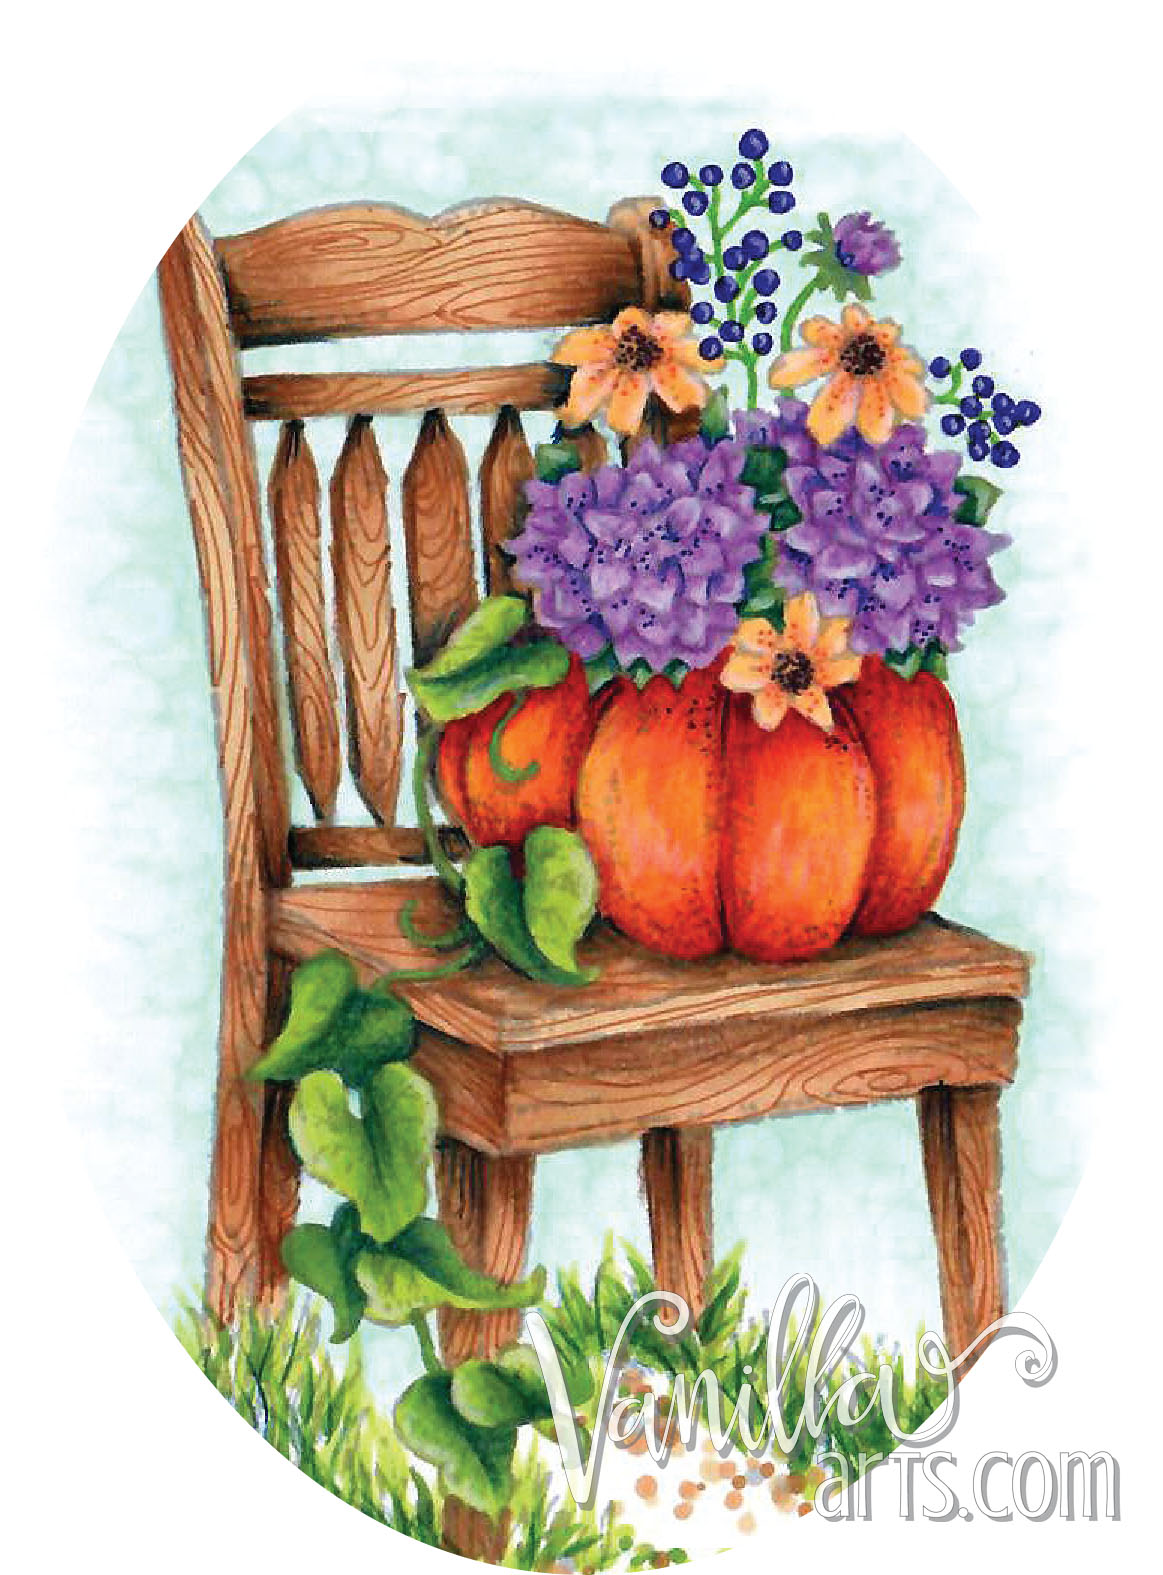 """So Grateful"" Chair, a lesson in composition and focus in still life images 